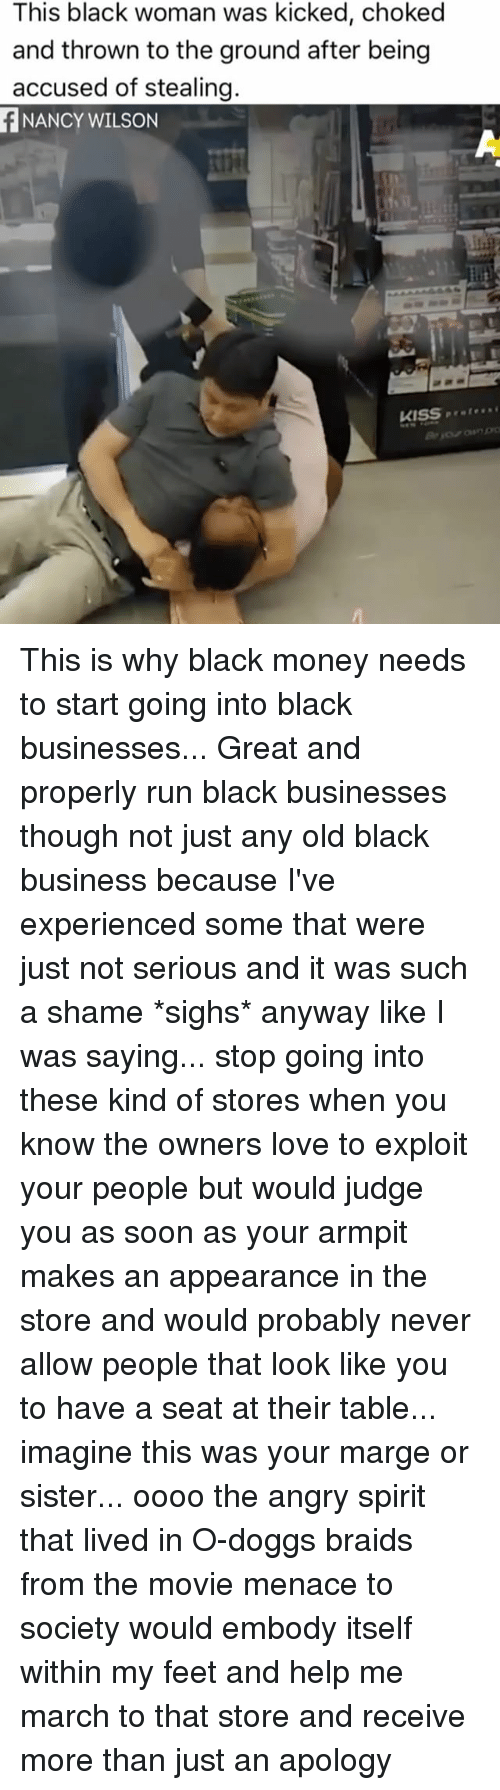 black money: This black woman was kicked, choked  and thrown to the ground after being  accused of stealing.  NANCY WILSON  KISS This is why black money needs to start going into black businesses... Great and properly run black businesses though not just any old black business because I've experienced some that were just not serious and it was such a shame *sighs* anyway like I was saying... stop going into these kind of stores when you know the owners love to exploit your people but would judge you as soon as your armpit makes an appearance in the store and would probably never allow people that look like you to have a seat at their table... imagine this was your marge or sister... oooo the angry spirit that lived in O-doggs braids from the movie menace to society would embody itself within my feet and help me march to that store and receive more than just an apology